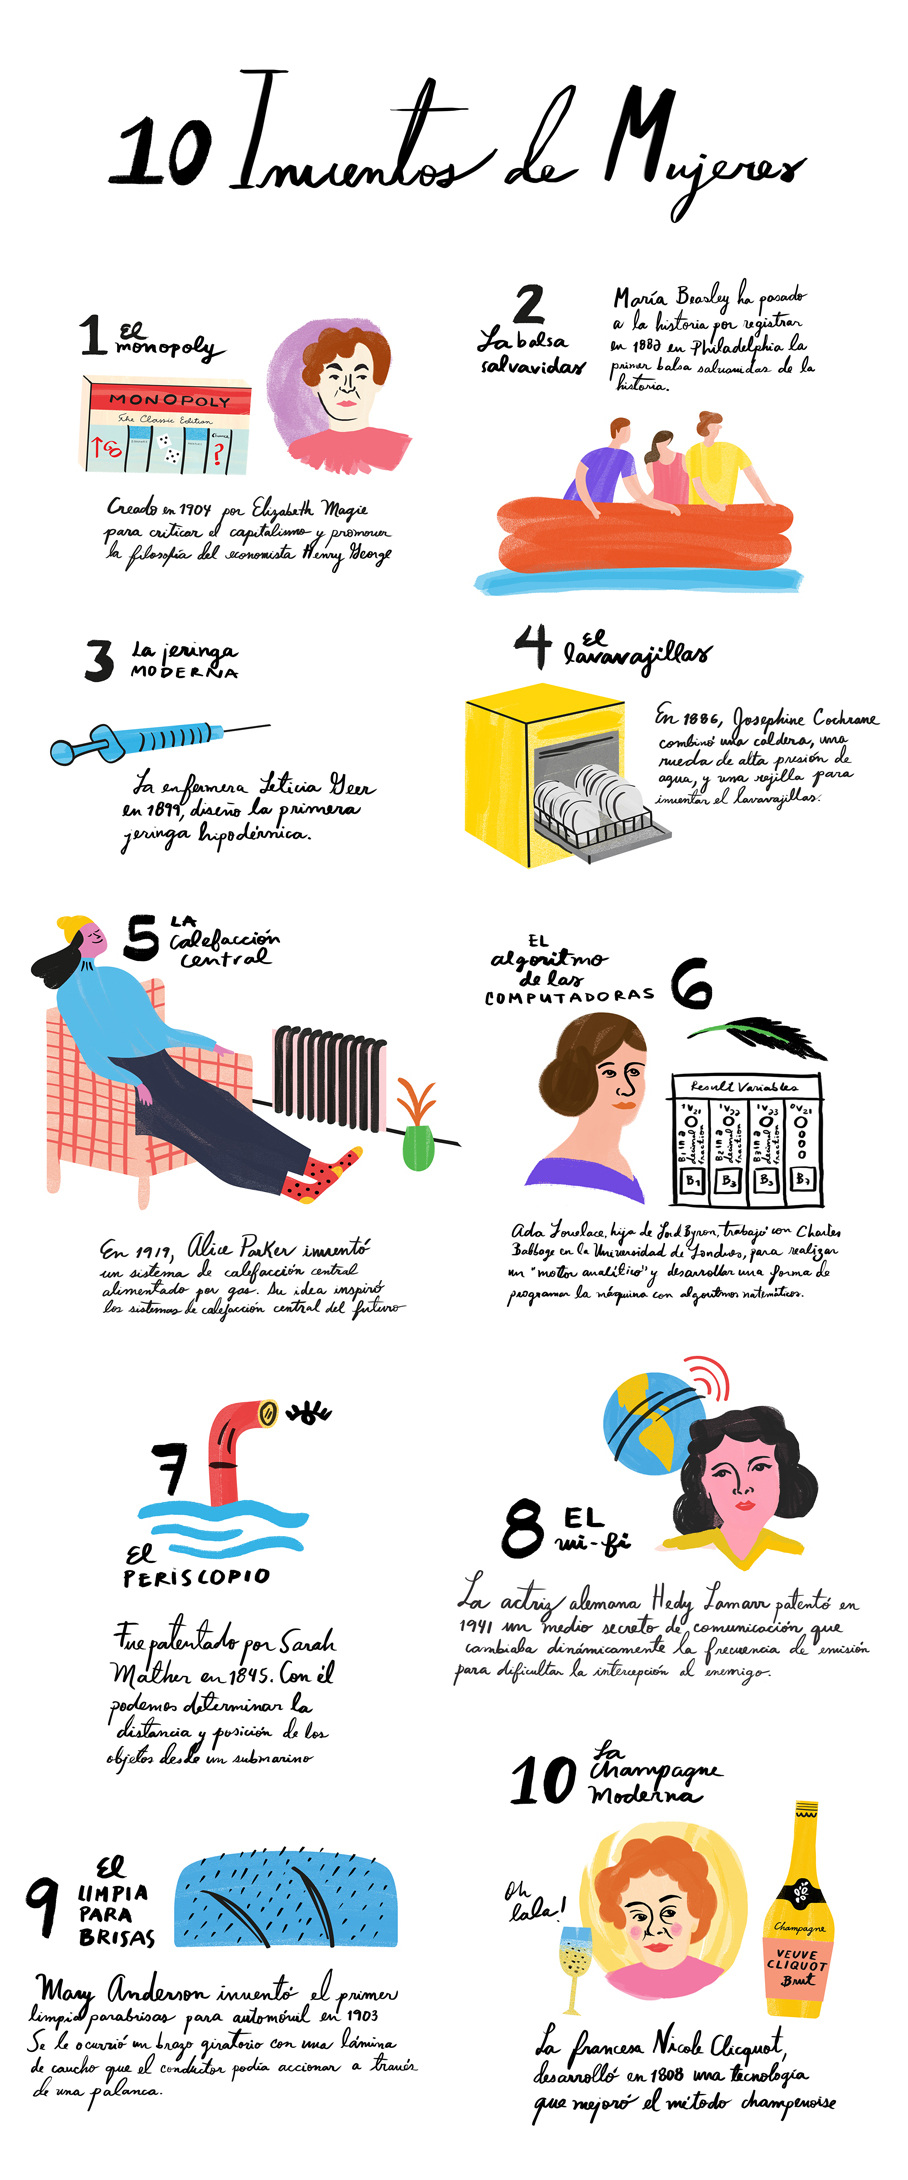 10 Modern Things Invented by Women illustrated by Monica Andino // DNAMAG